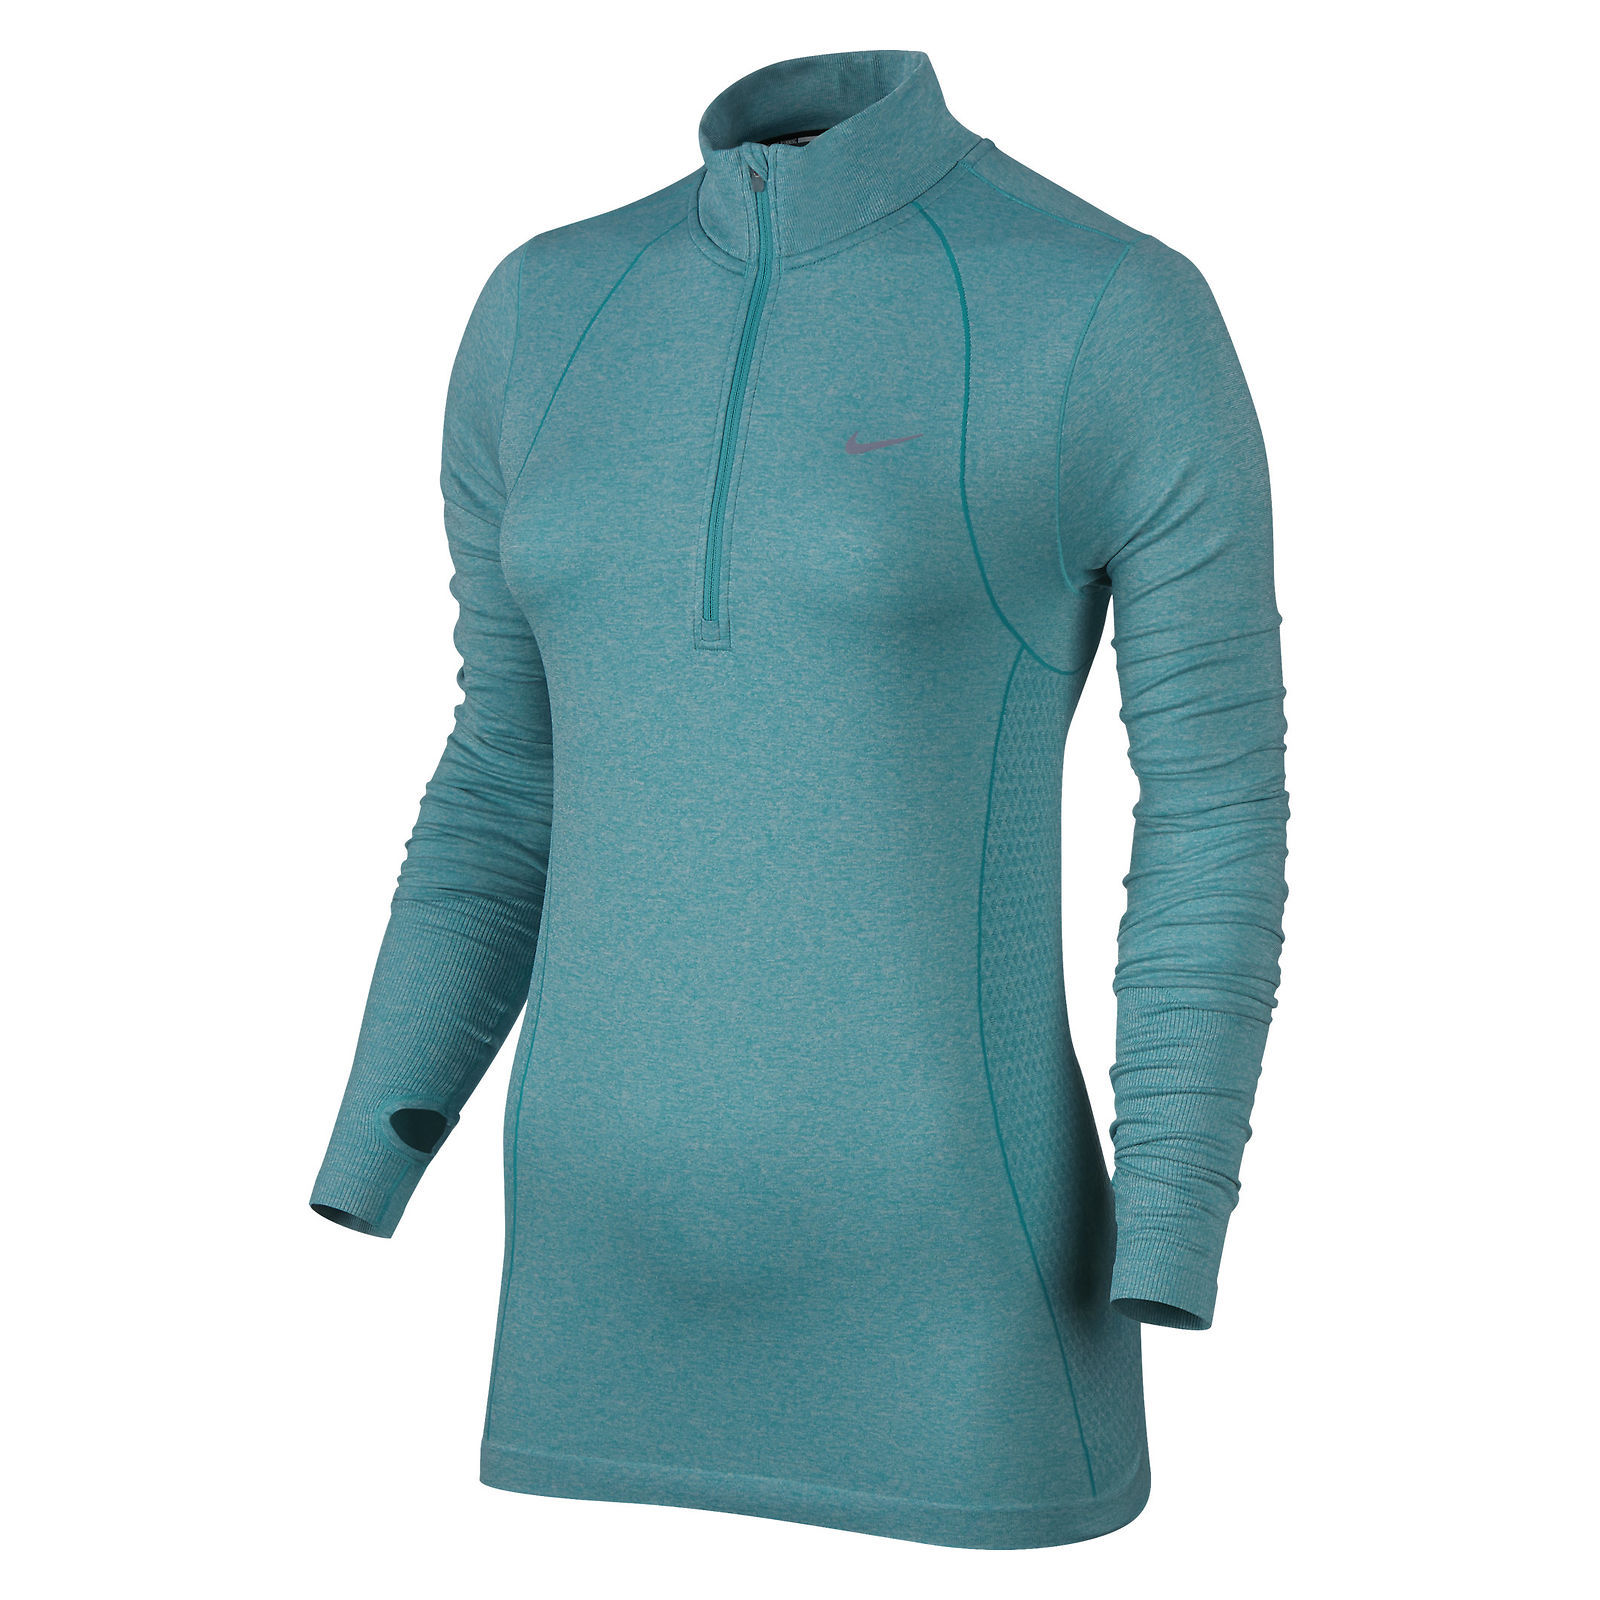 Bluza Nike Dri-FIT Knit 1/2 zip W 588534